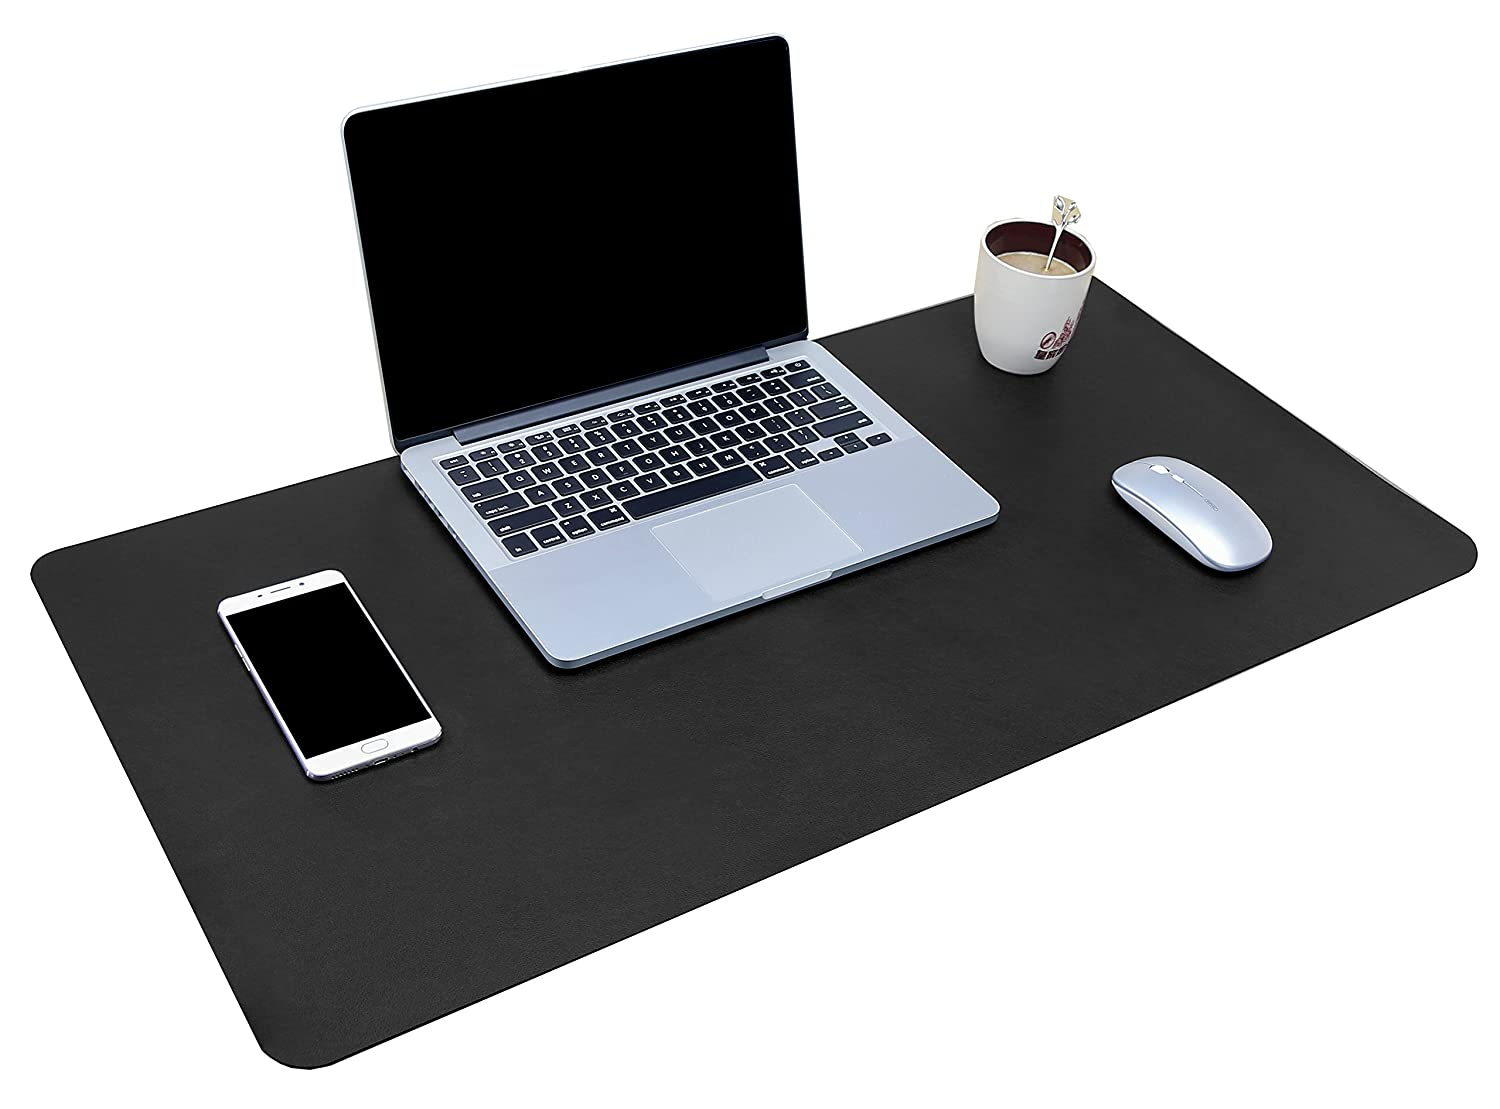 "Multifunctional Office Desk Pad, 35.4"" x 17"" YSAGi Ultra Thin Waterproof PU Leather Mouse Pad, Dual Use Desk Writing Mat for Office/Home (35.4"" x 17"", Black)"